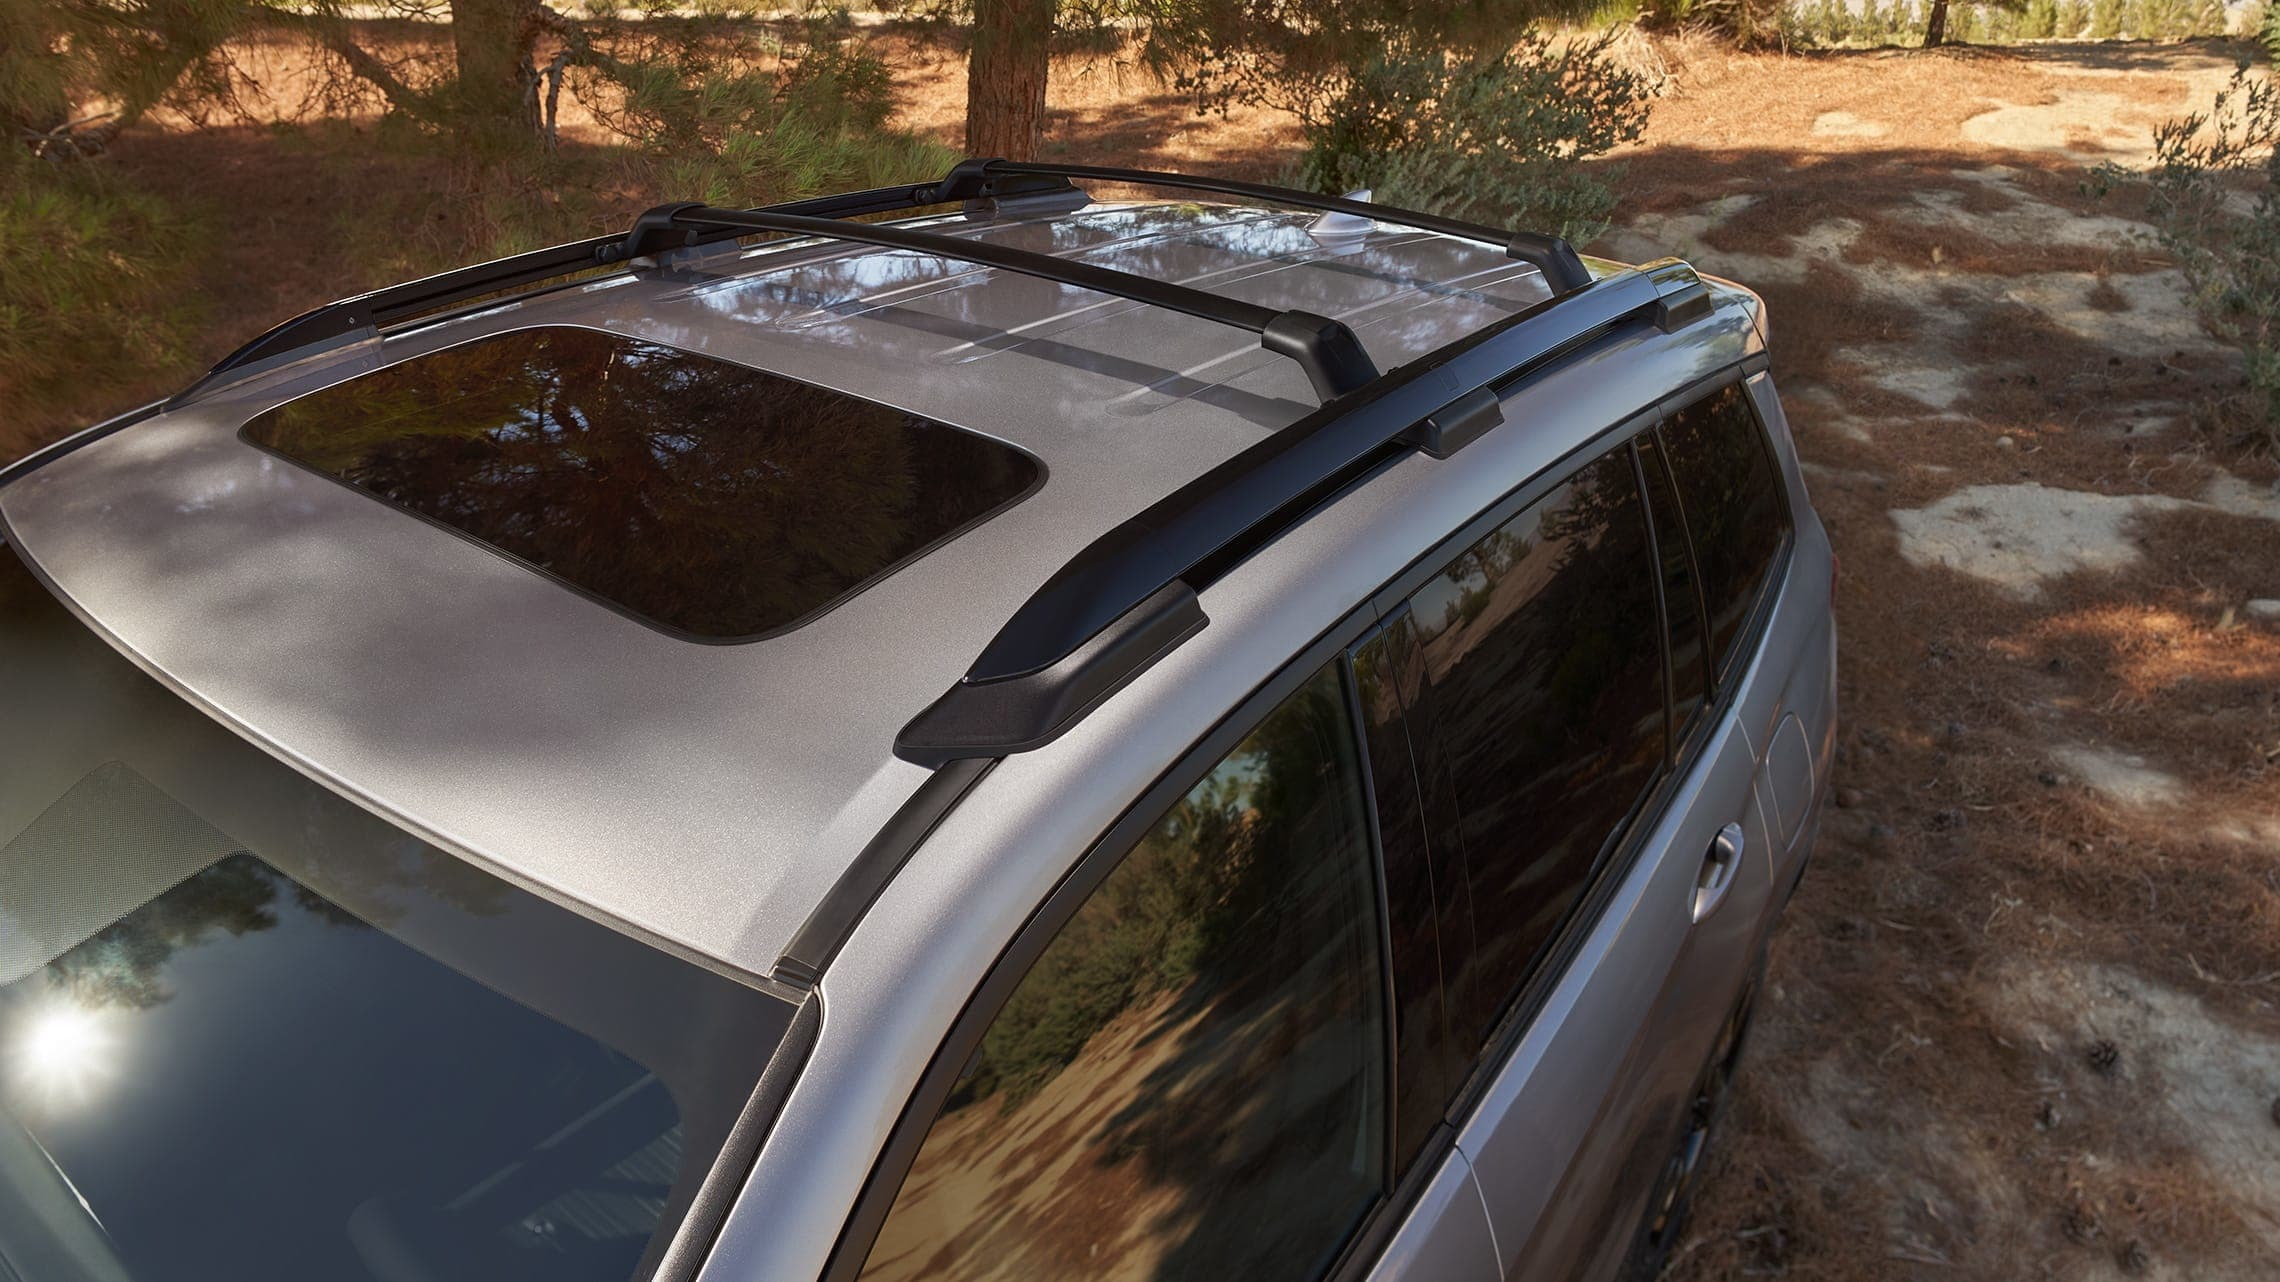 Honda Passport's Roof Rails can support up to 165 pounds